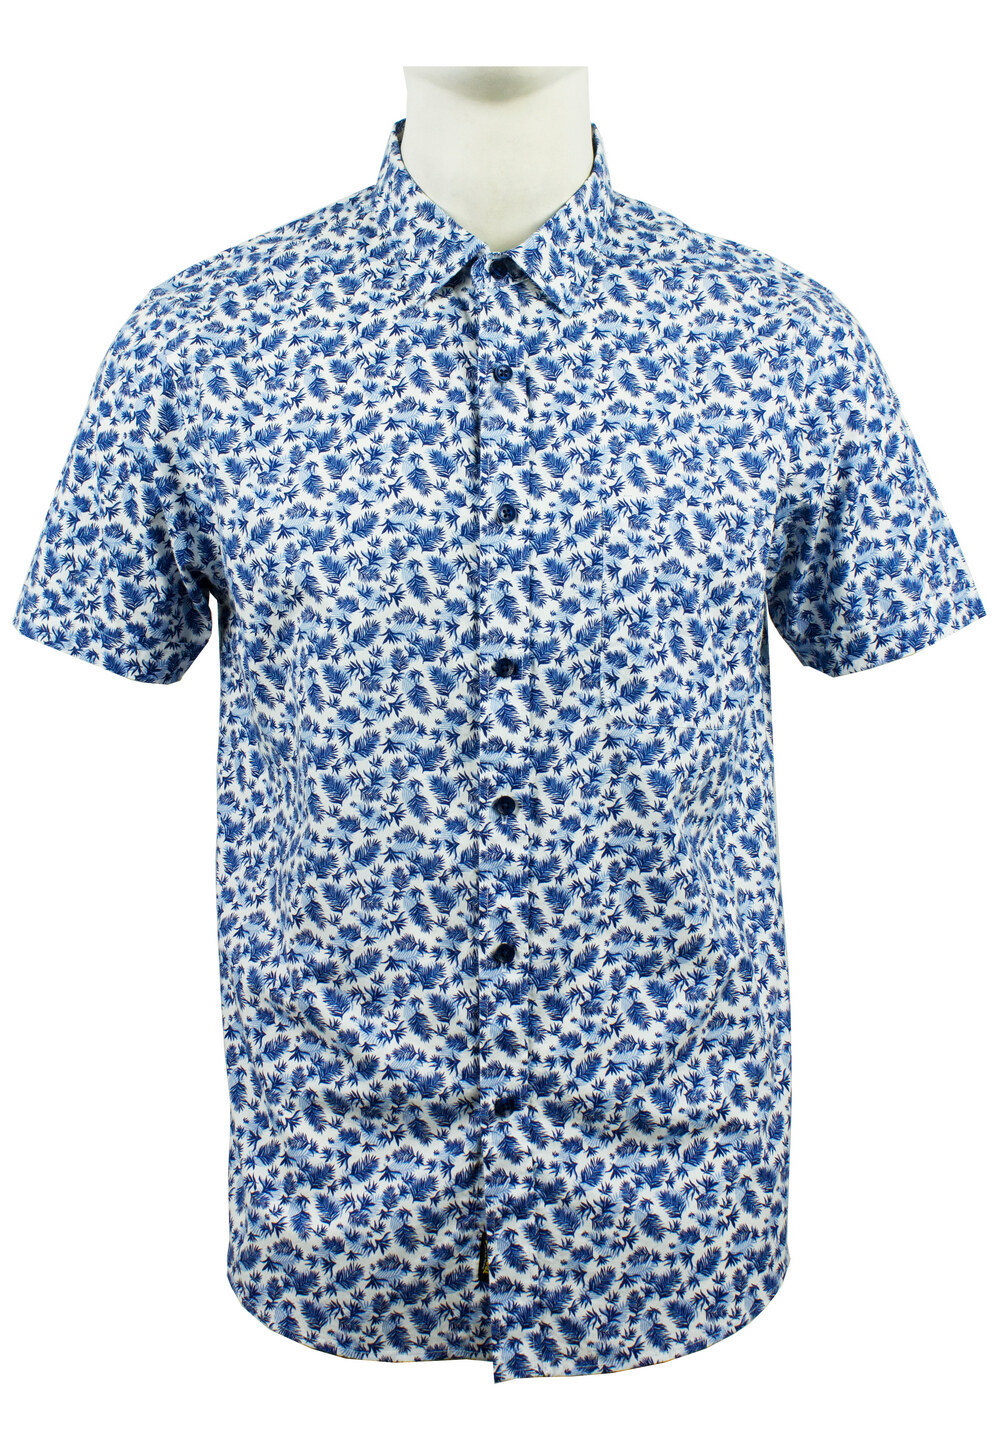 Men's Printed Short Sleeve Shirt 883